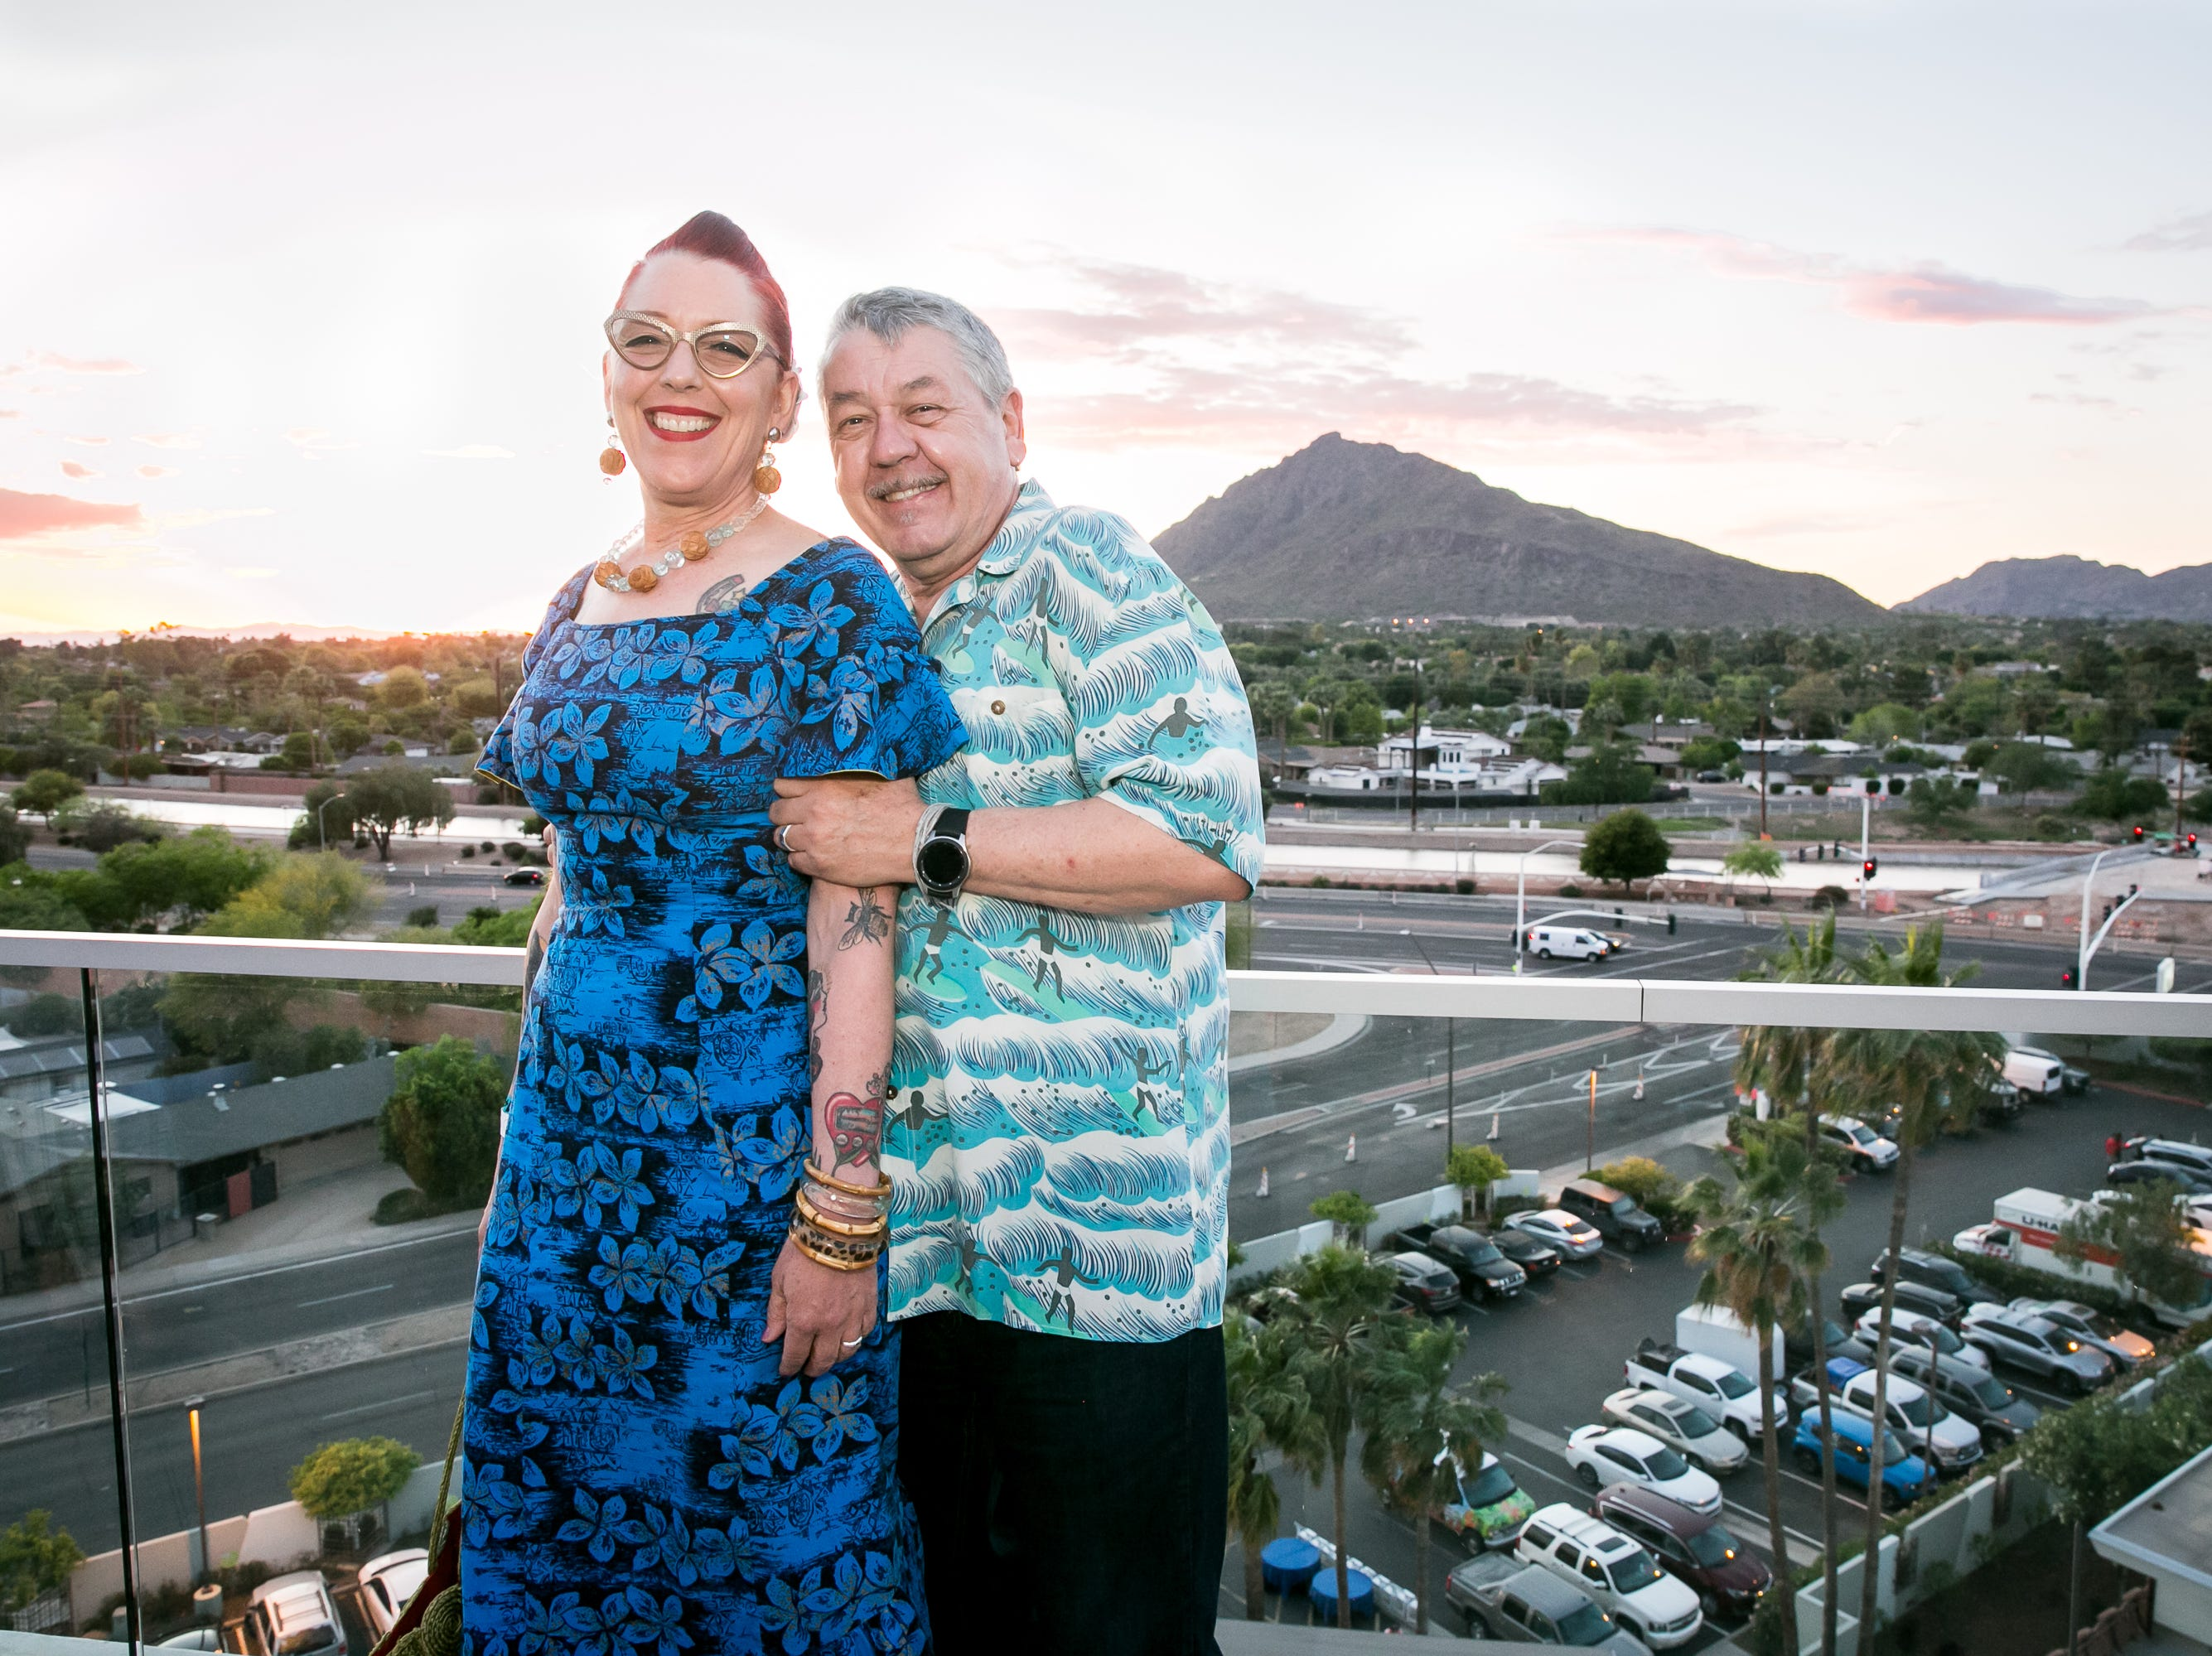 These two looked fantastic during Arizona Tiki Oasis at Hotel Valley Ho in Scottsdale on April 12, 2019.